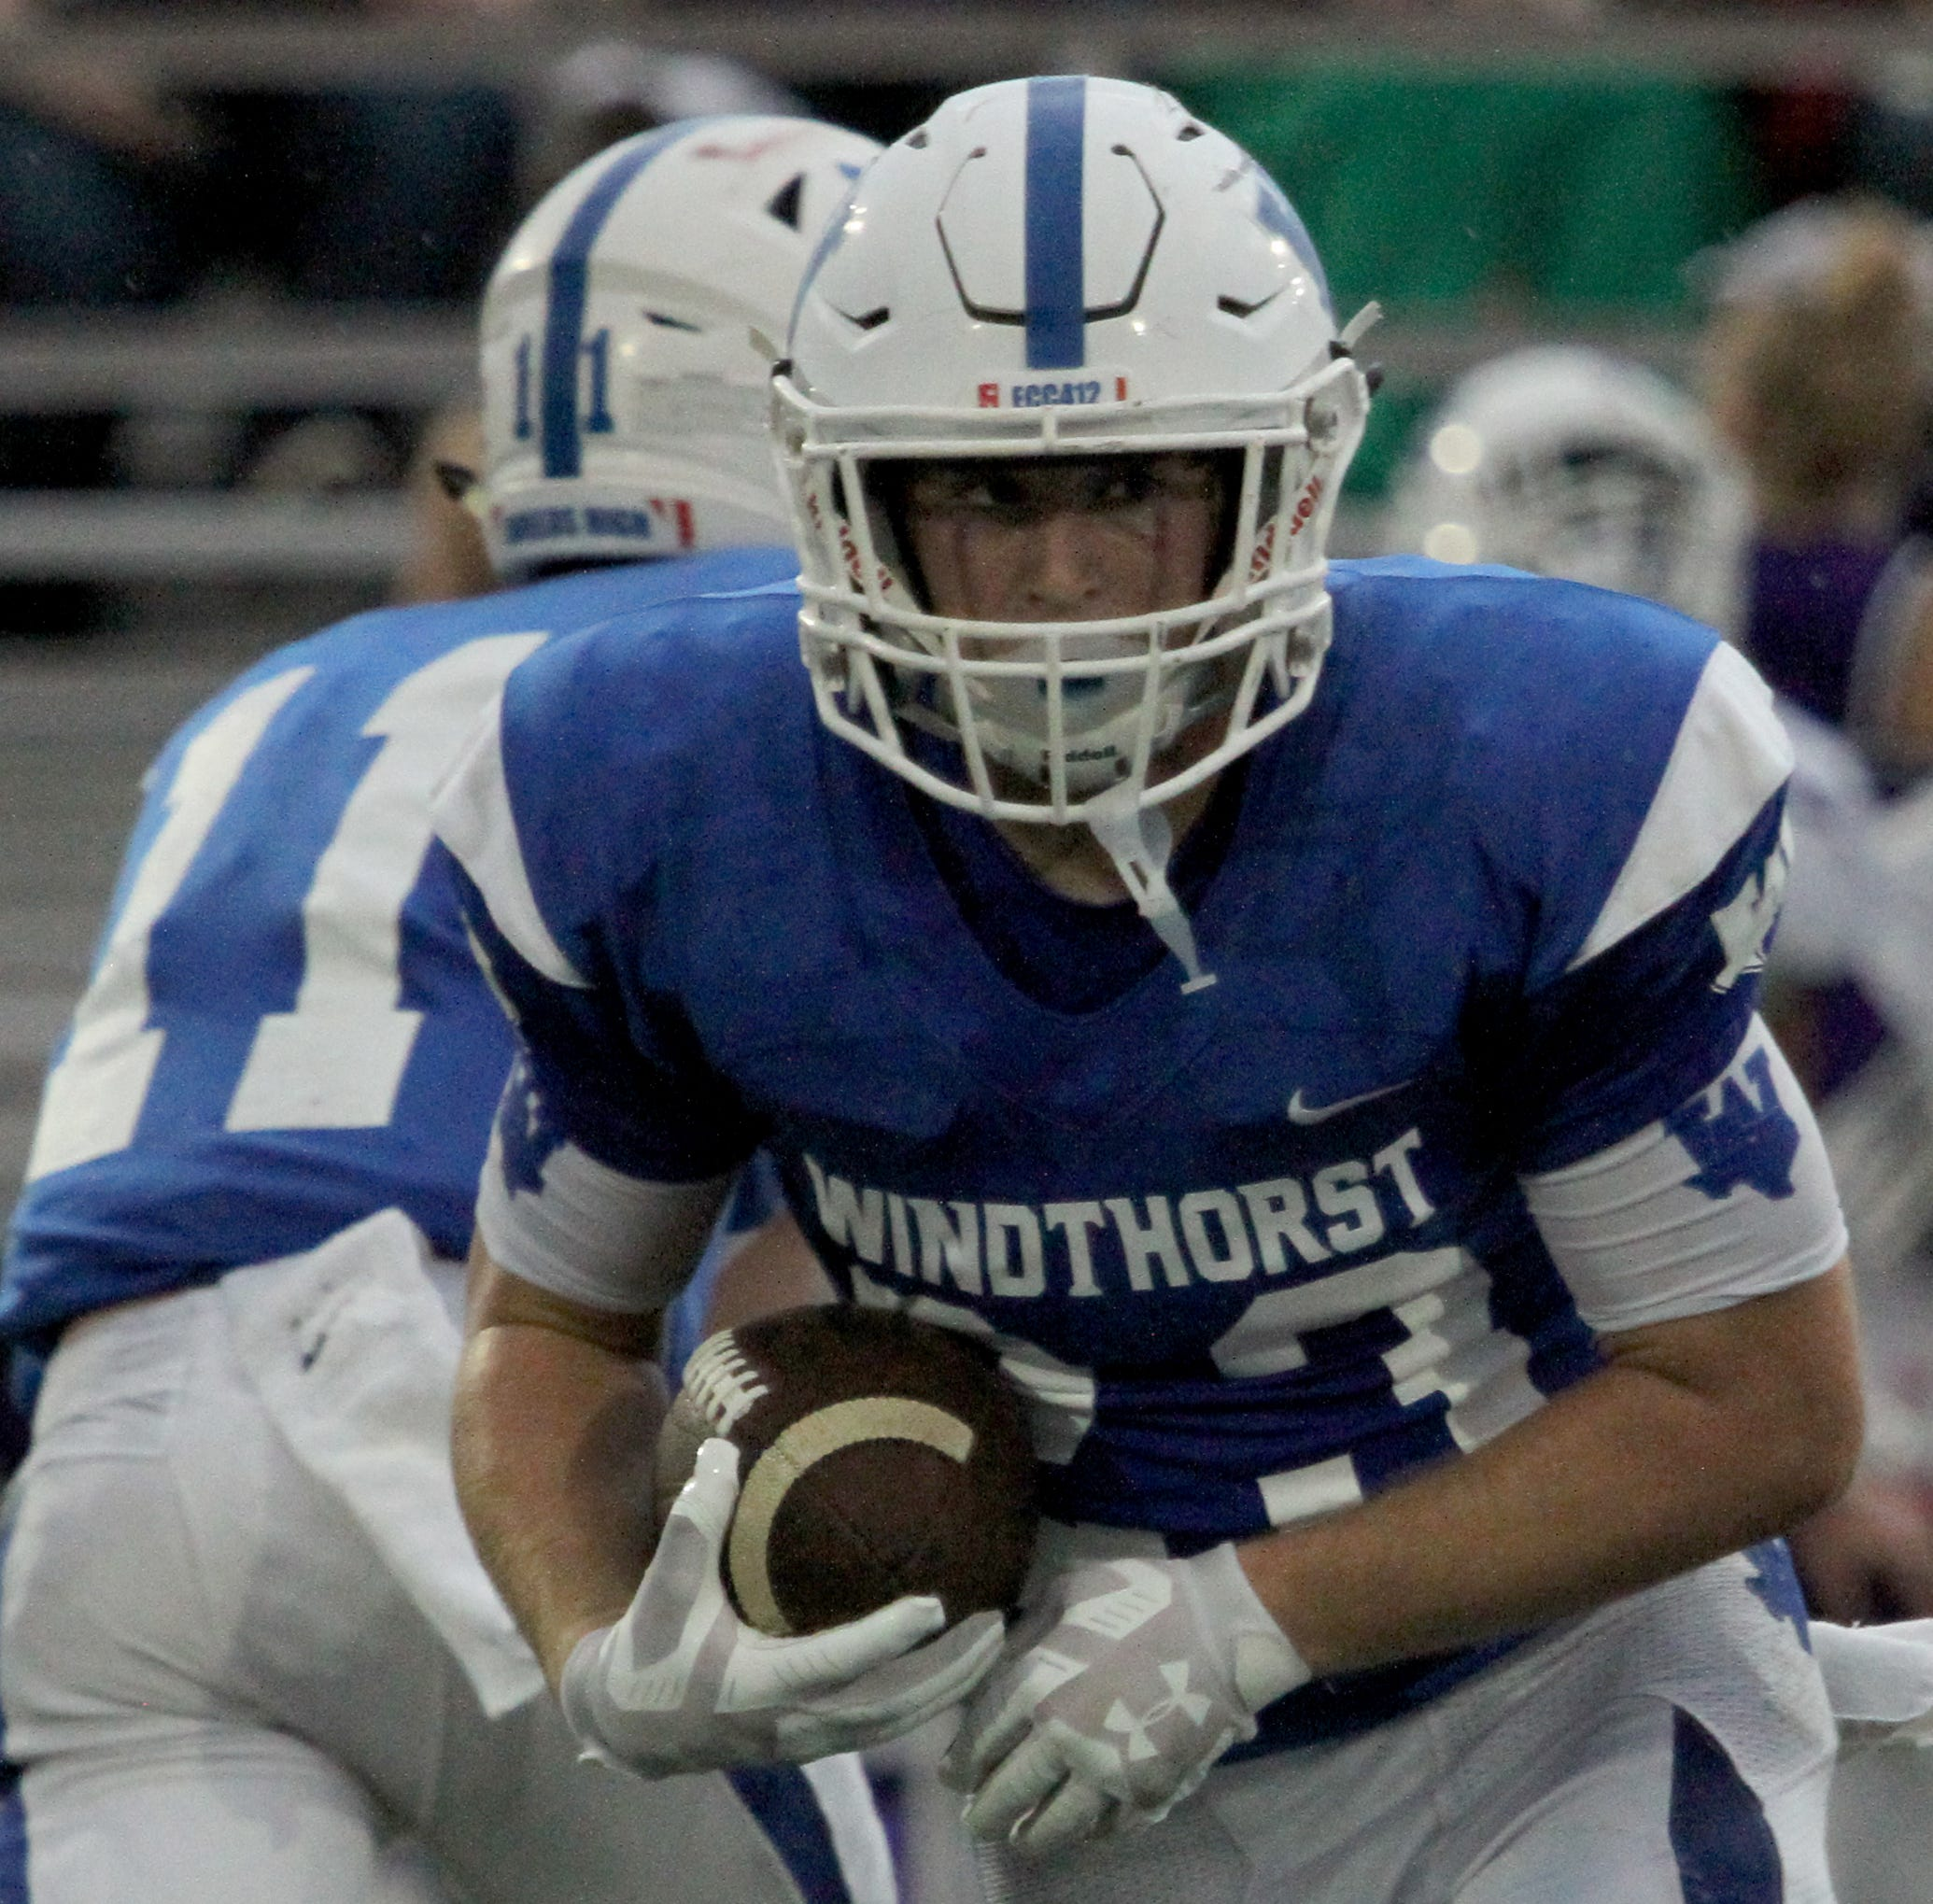 Class 2A Football Wrapup: Windthorst's Nathan Bales with 4-TD game for the ages